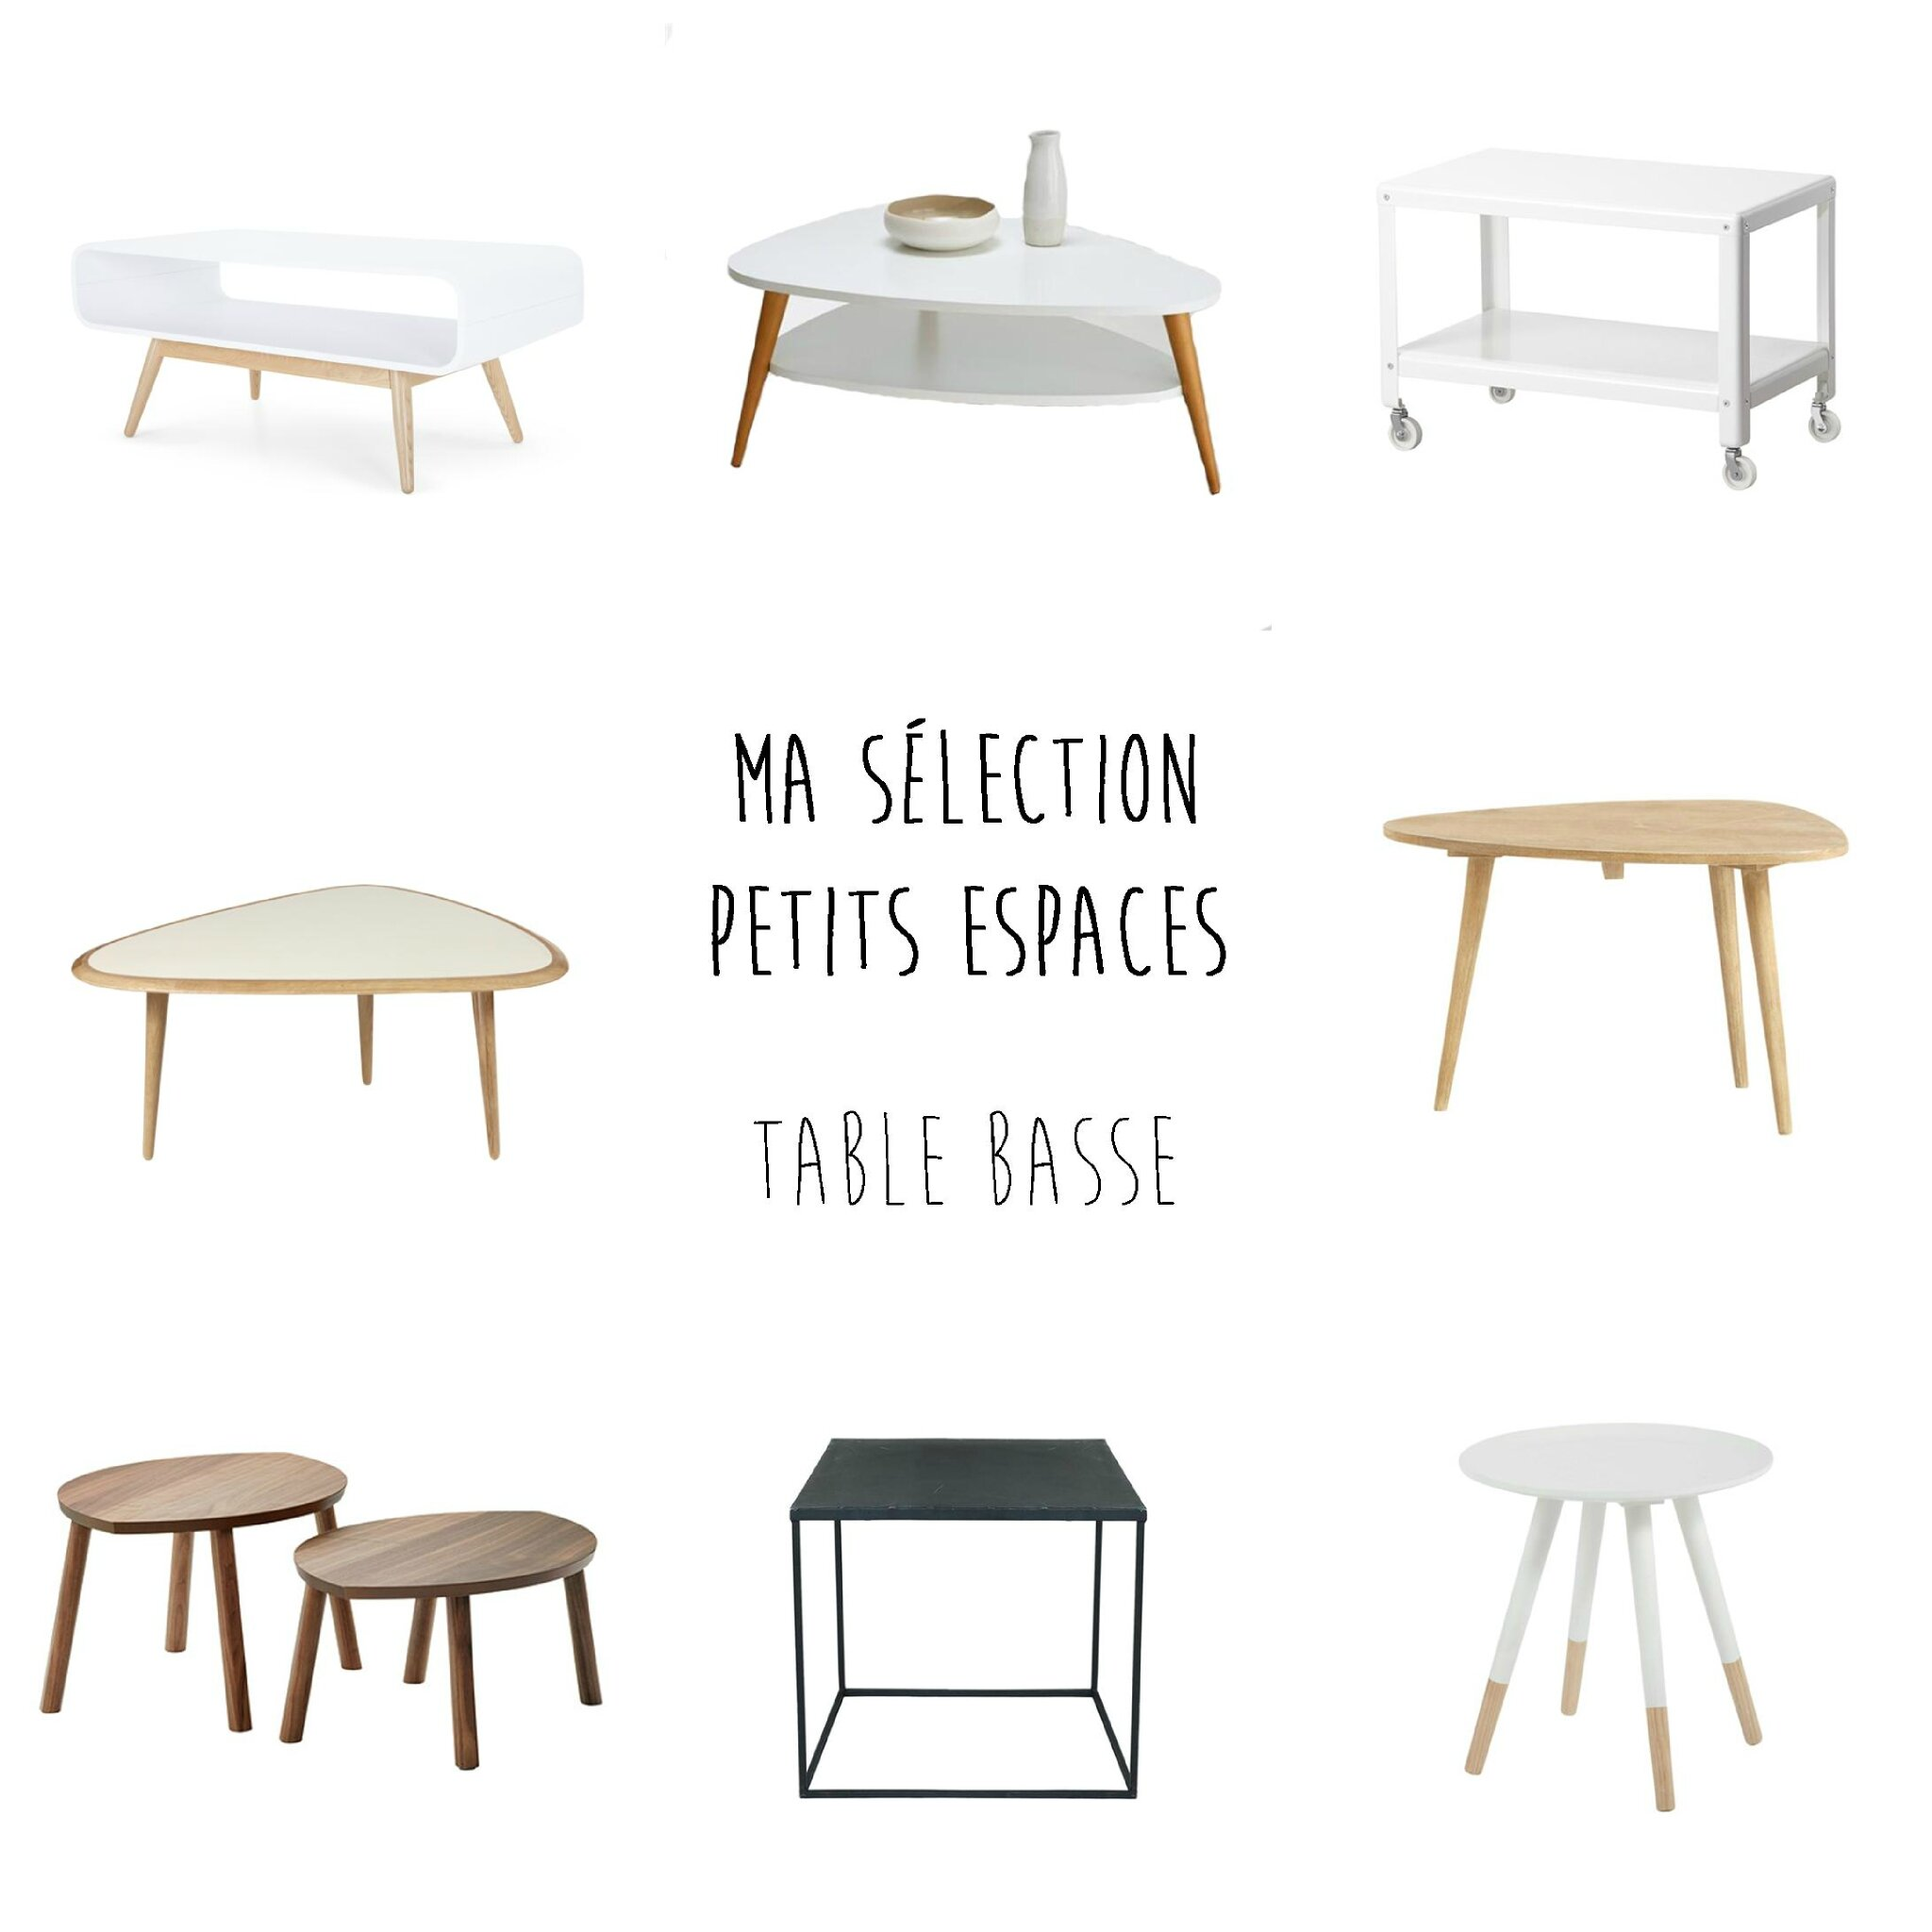 Un petit salon comment trouver la table basse id ale for Maison du monde table basse de salon